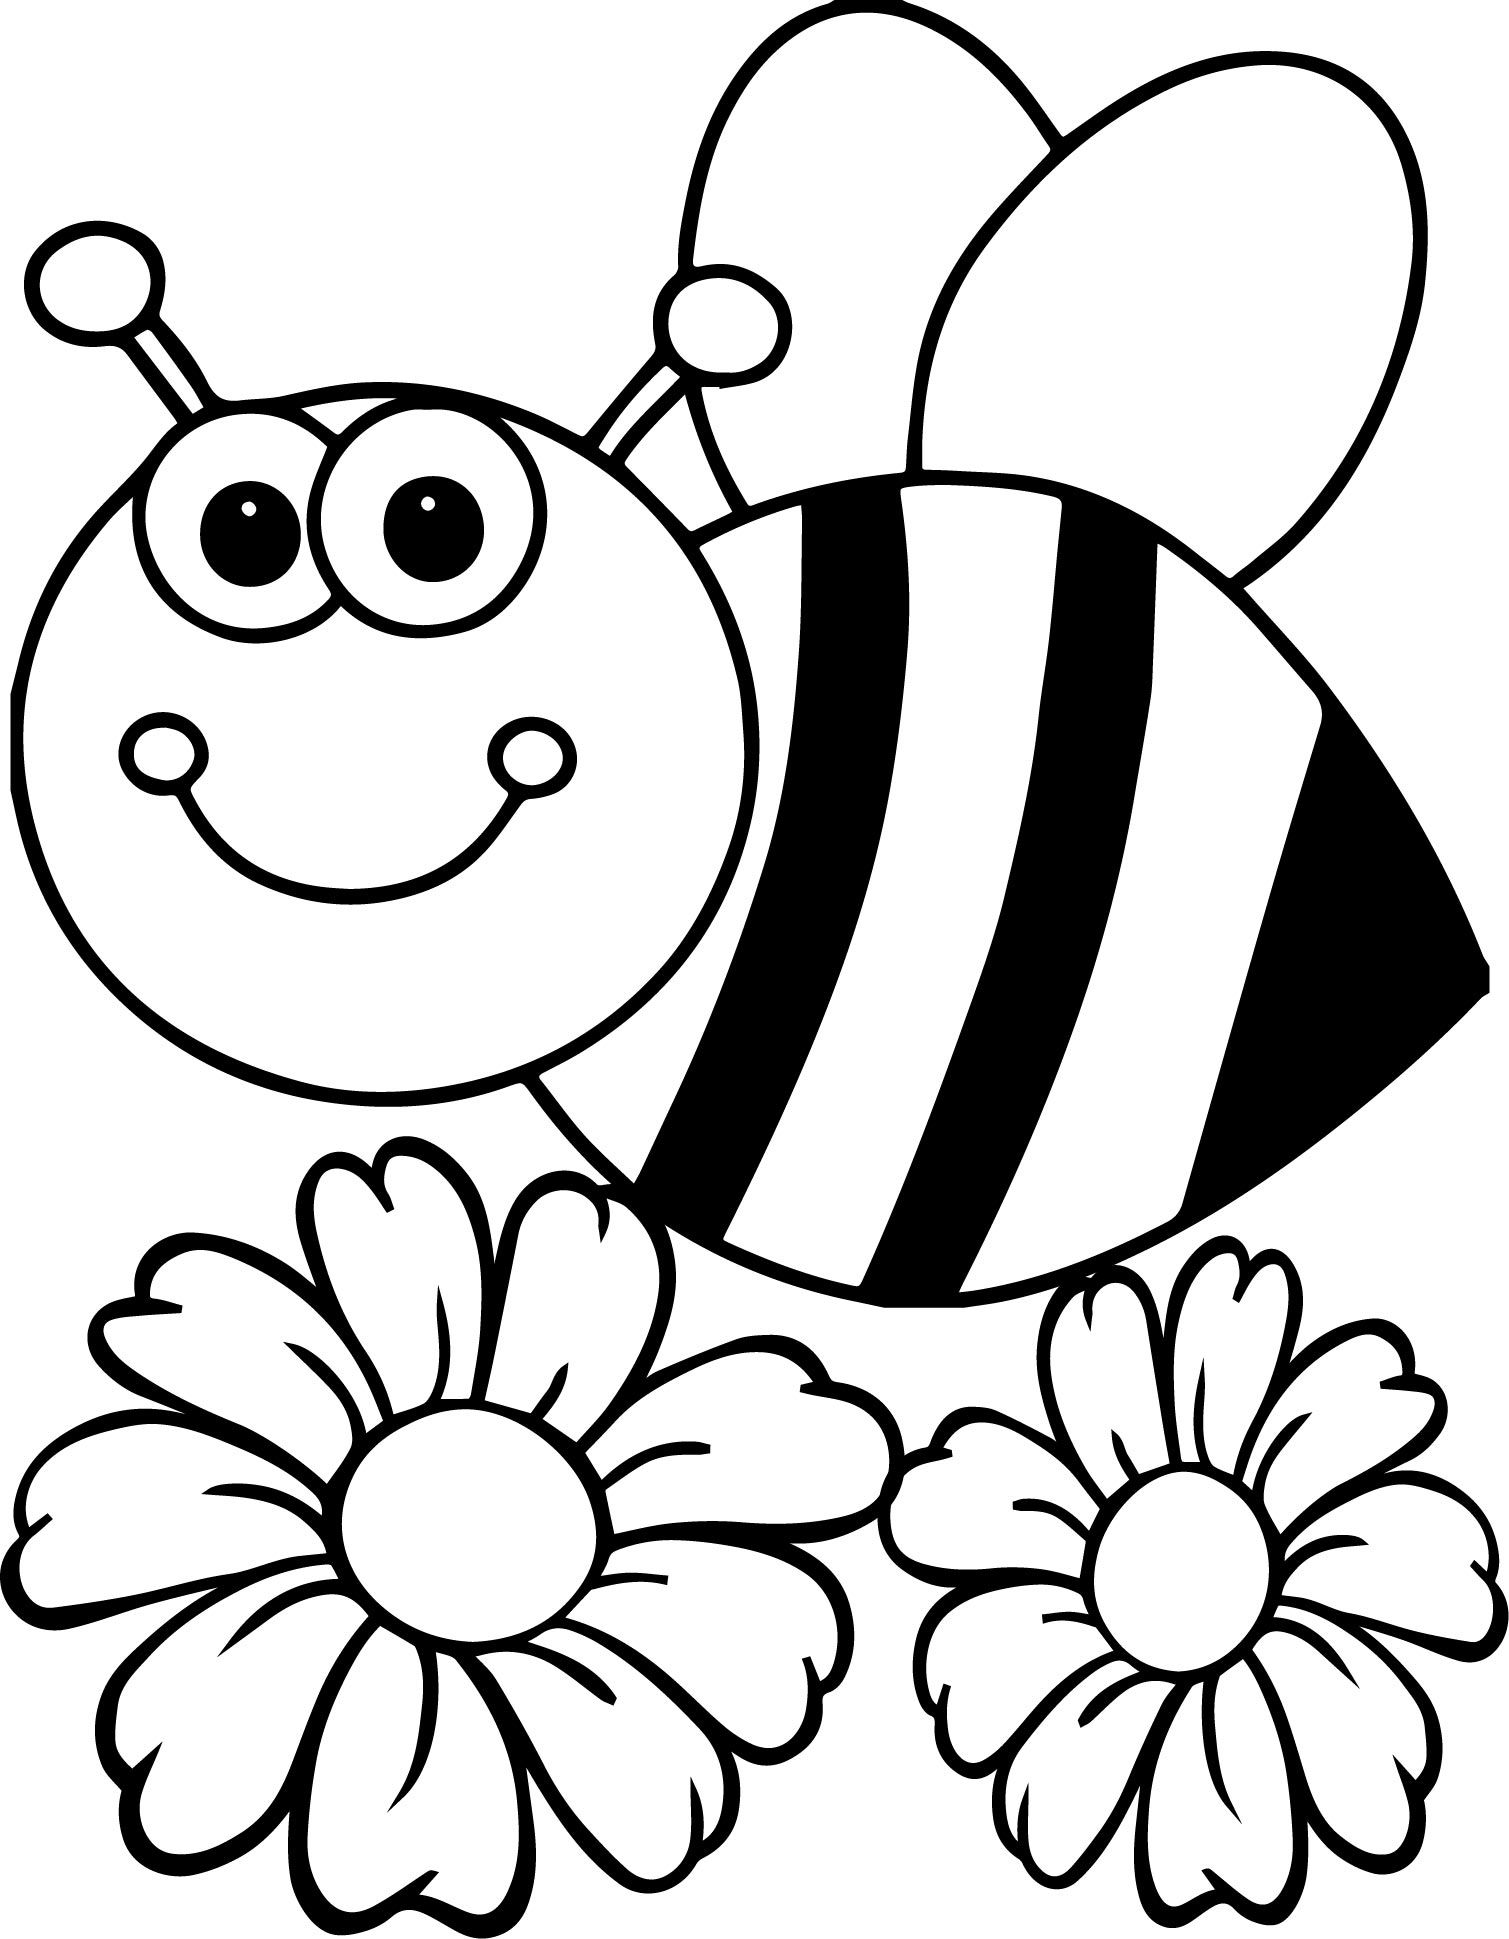 cool Bee Flower Coloring Page Bee coloring pages